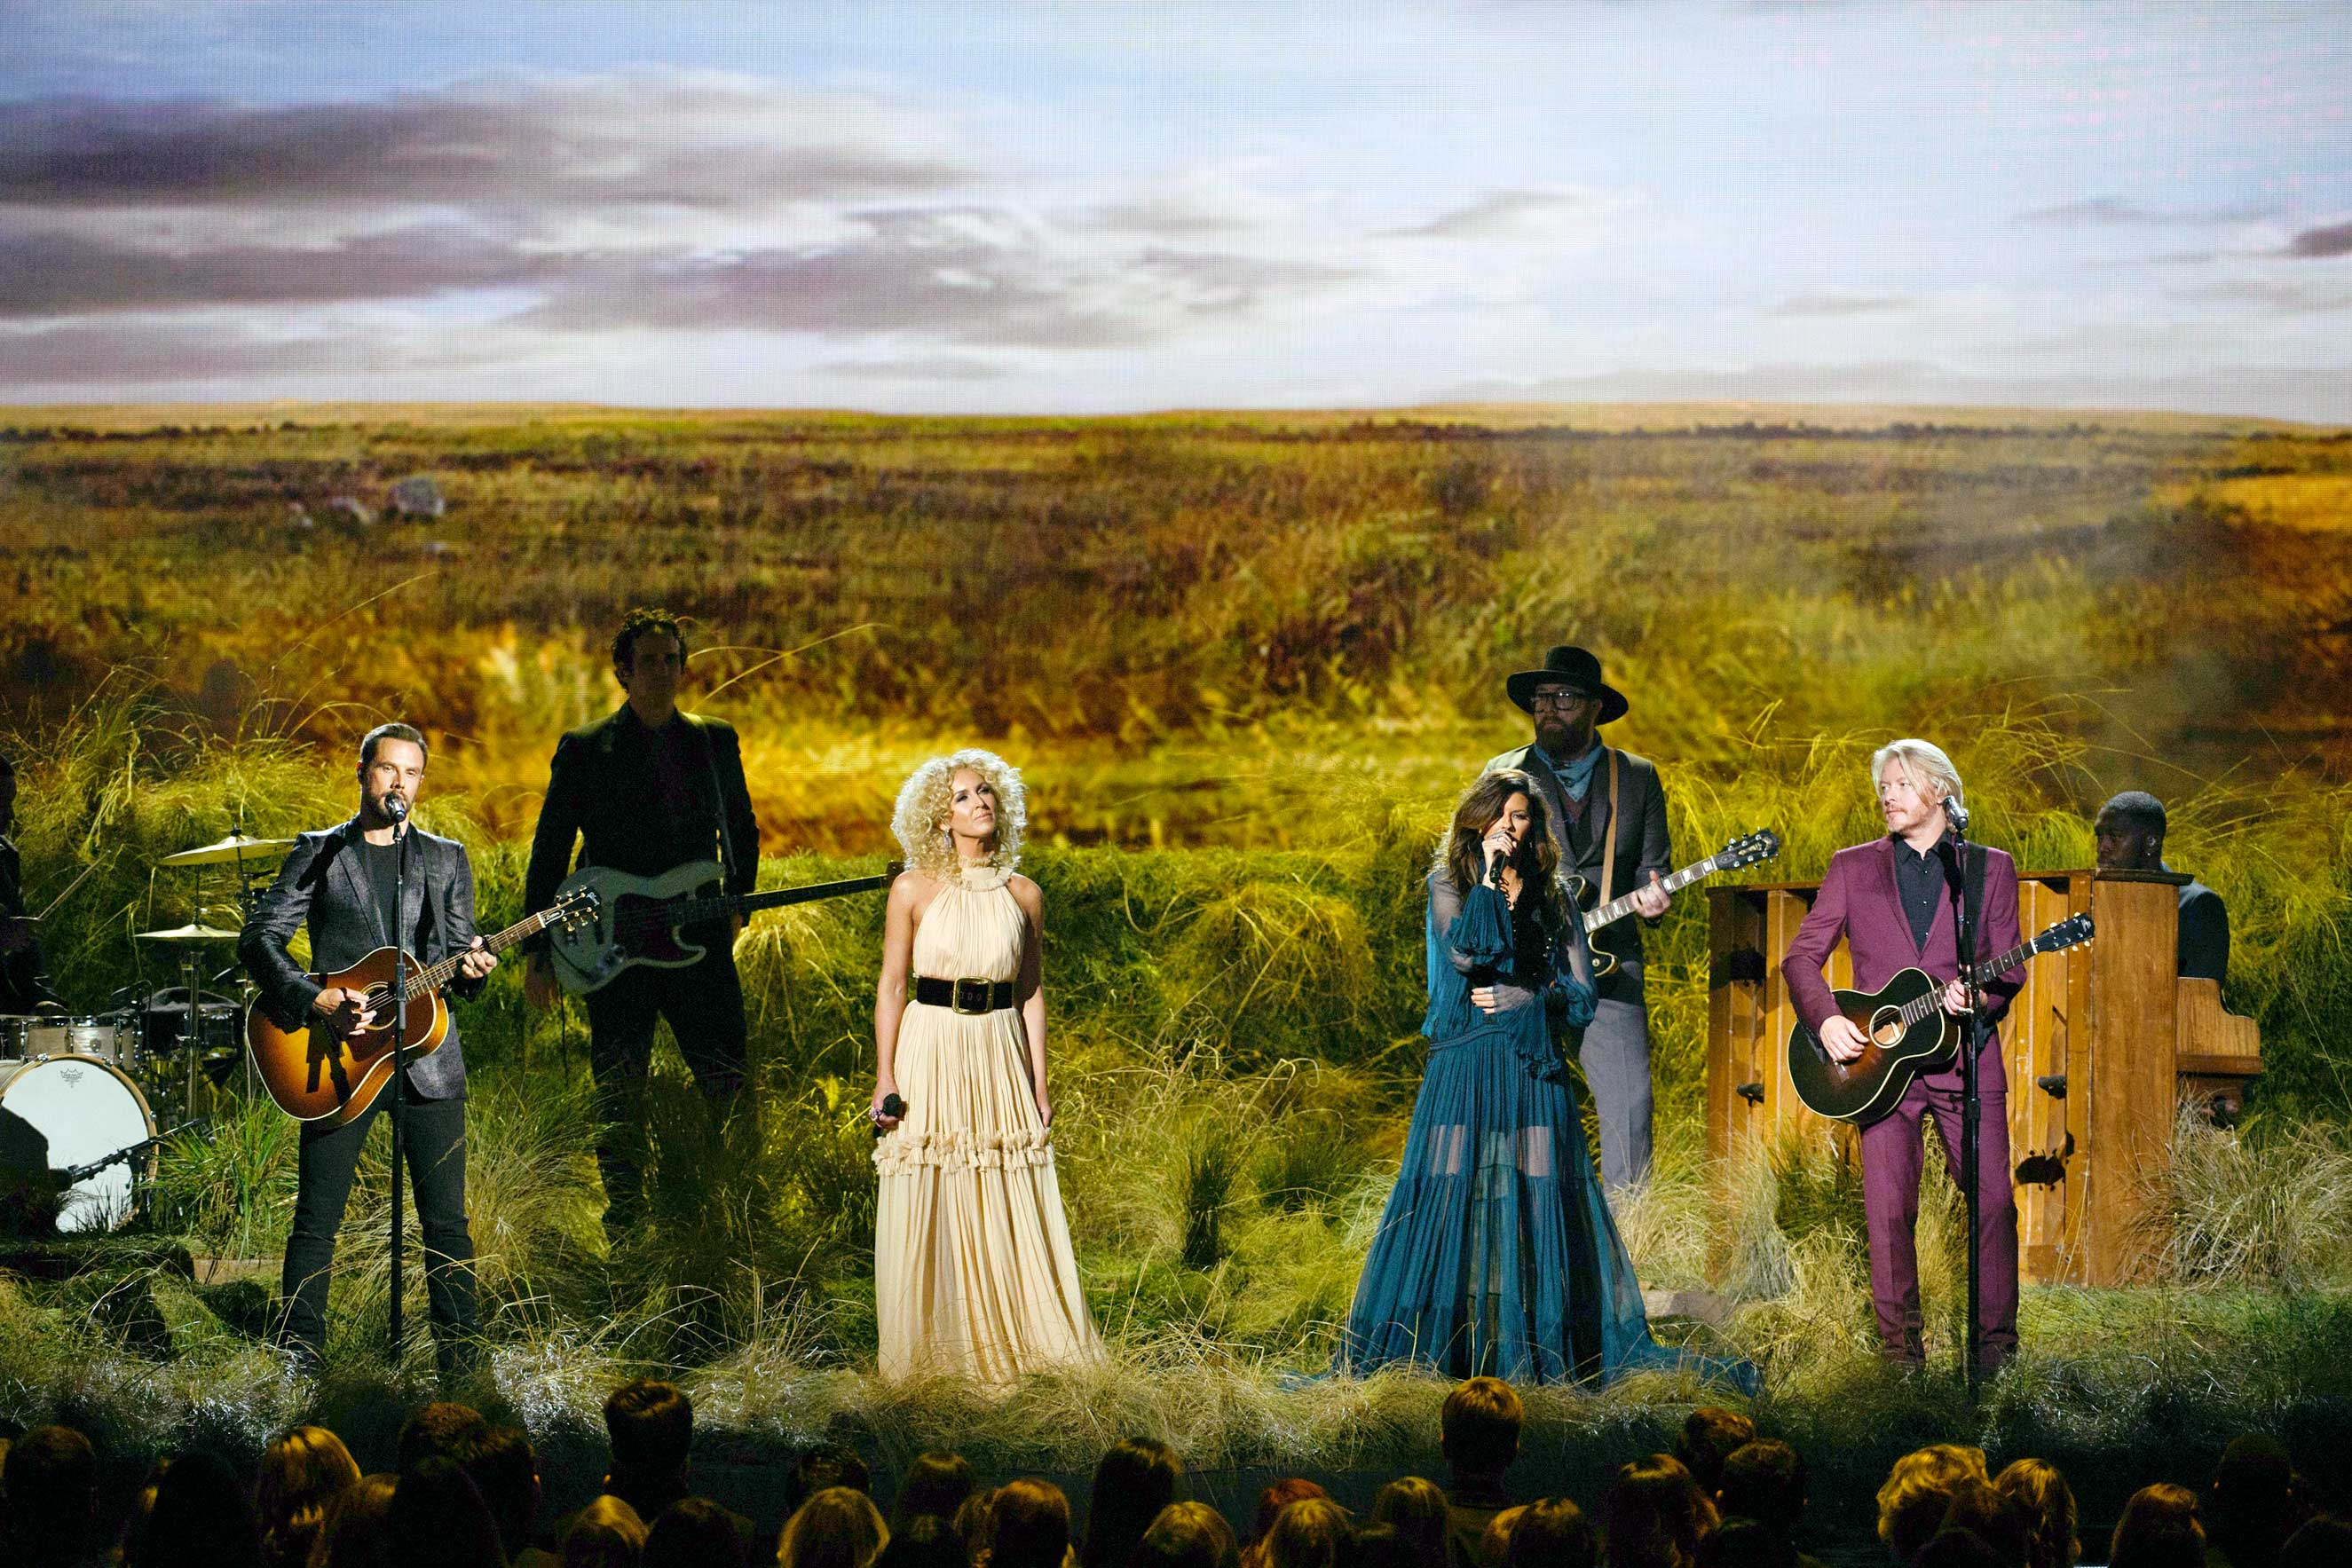 Little Big Town performing at The 50th Annual CMA Awards in Nashville, Wednesday, November 2.